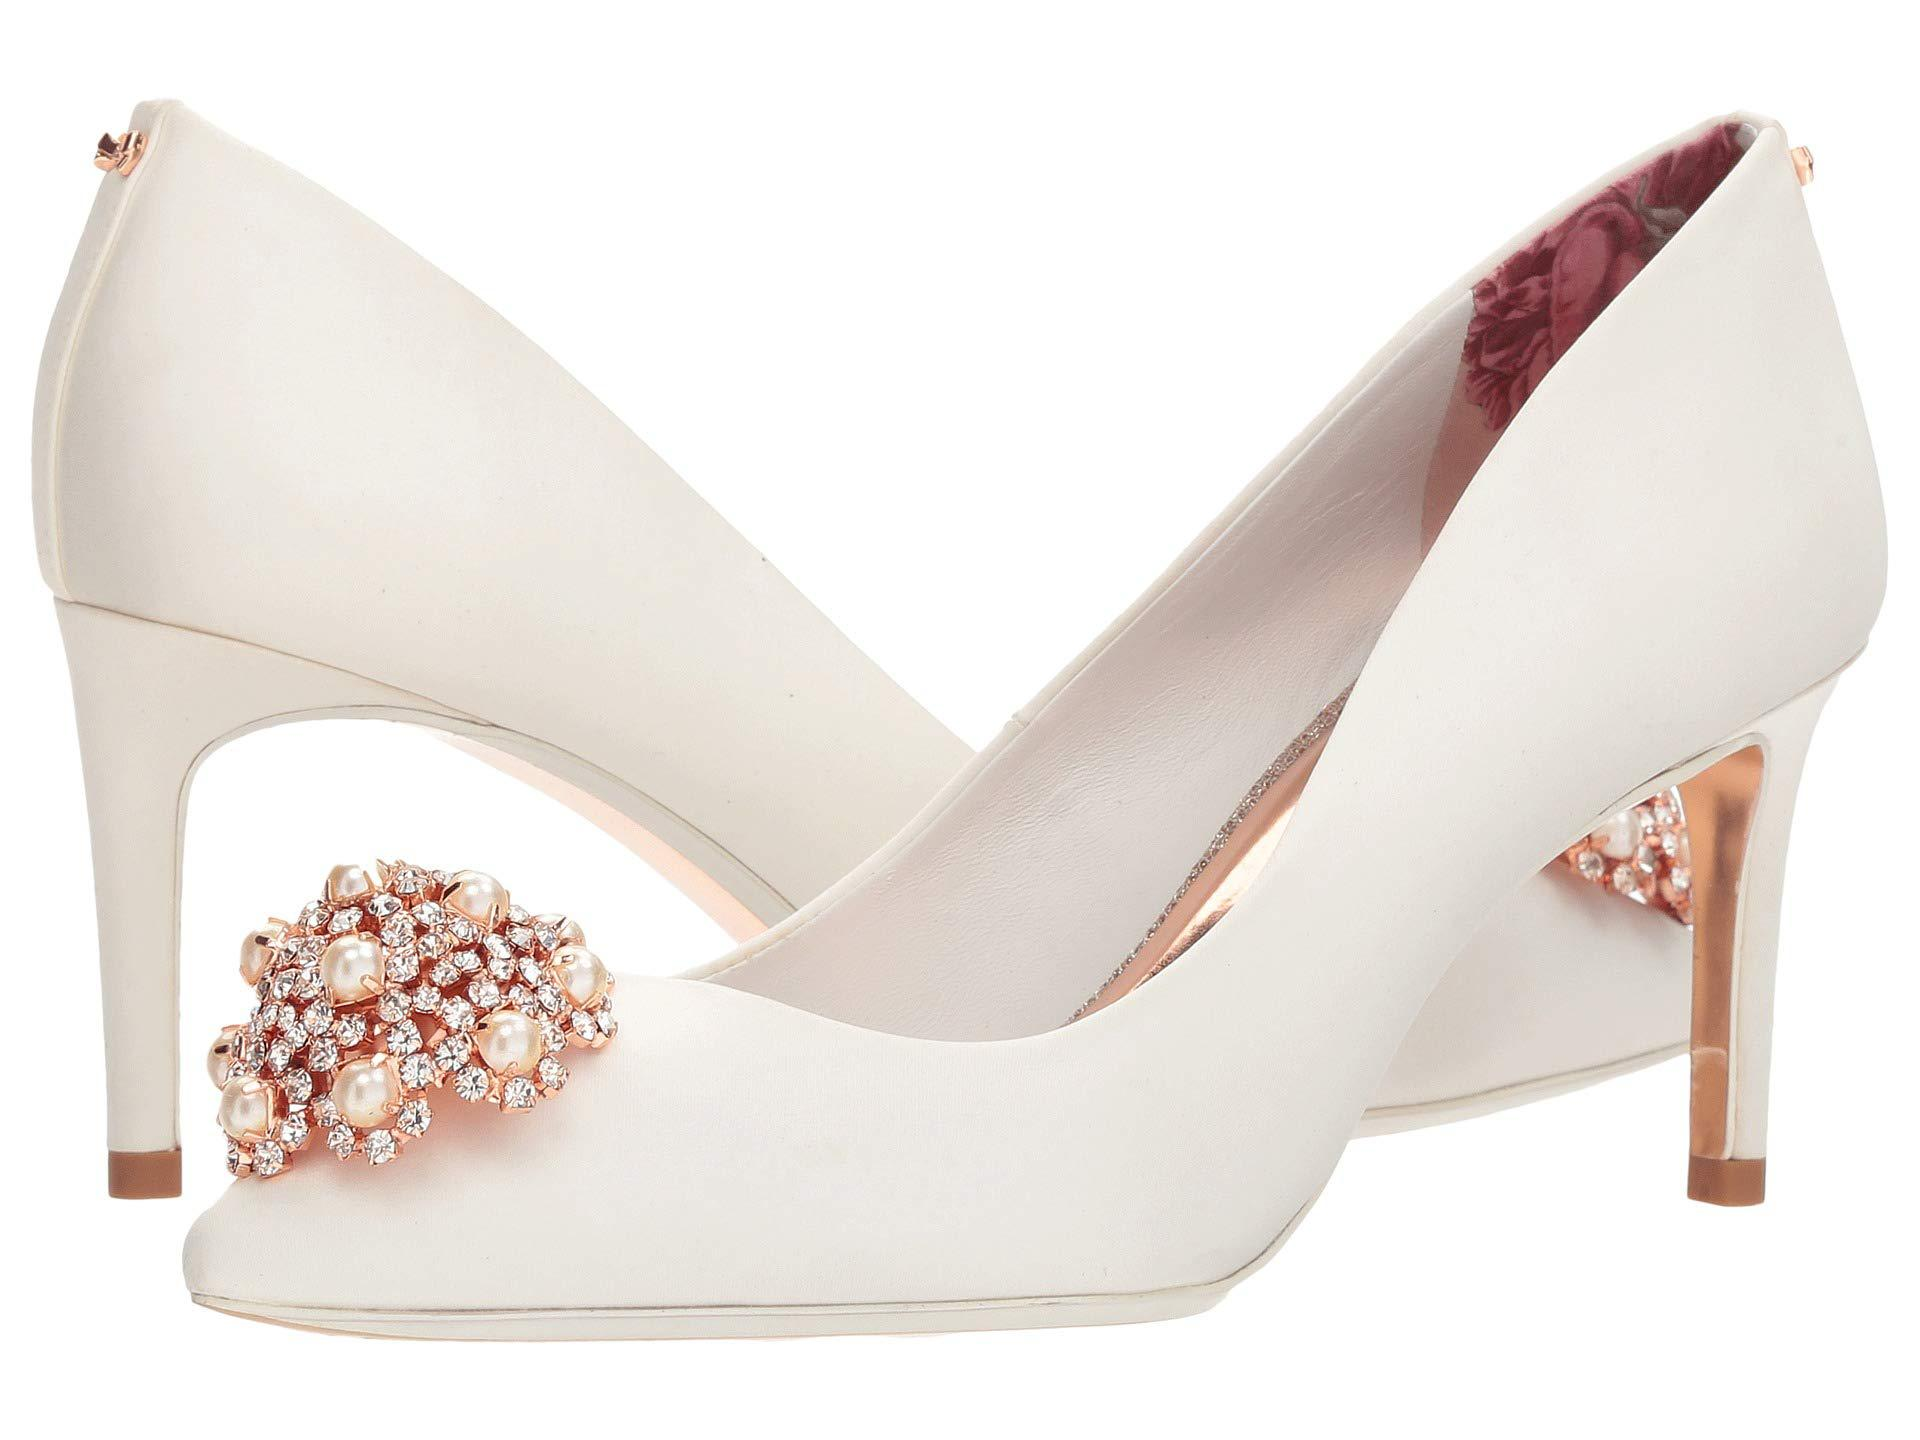 f64fd65c2d0 Lyst - Ted Baker Dahrlin Pump in White - Save 62%